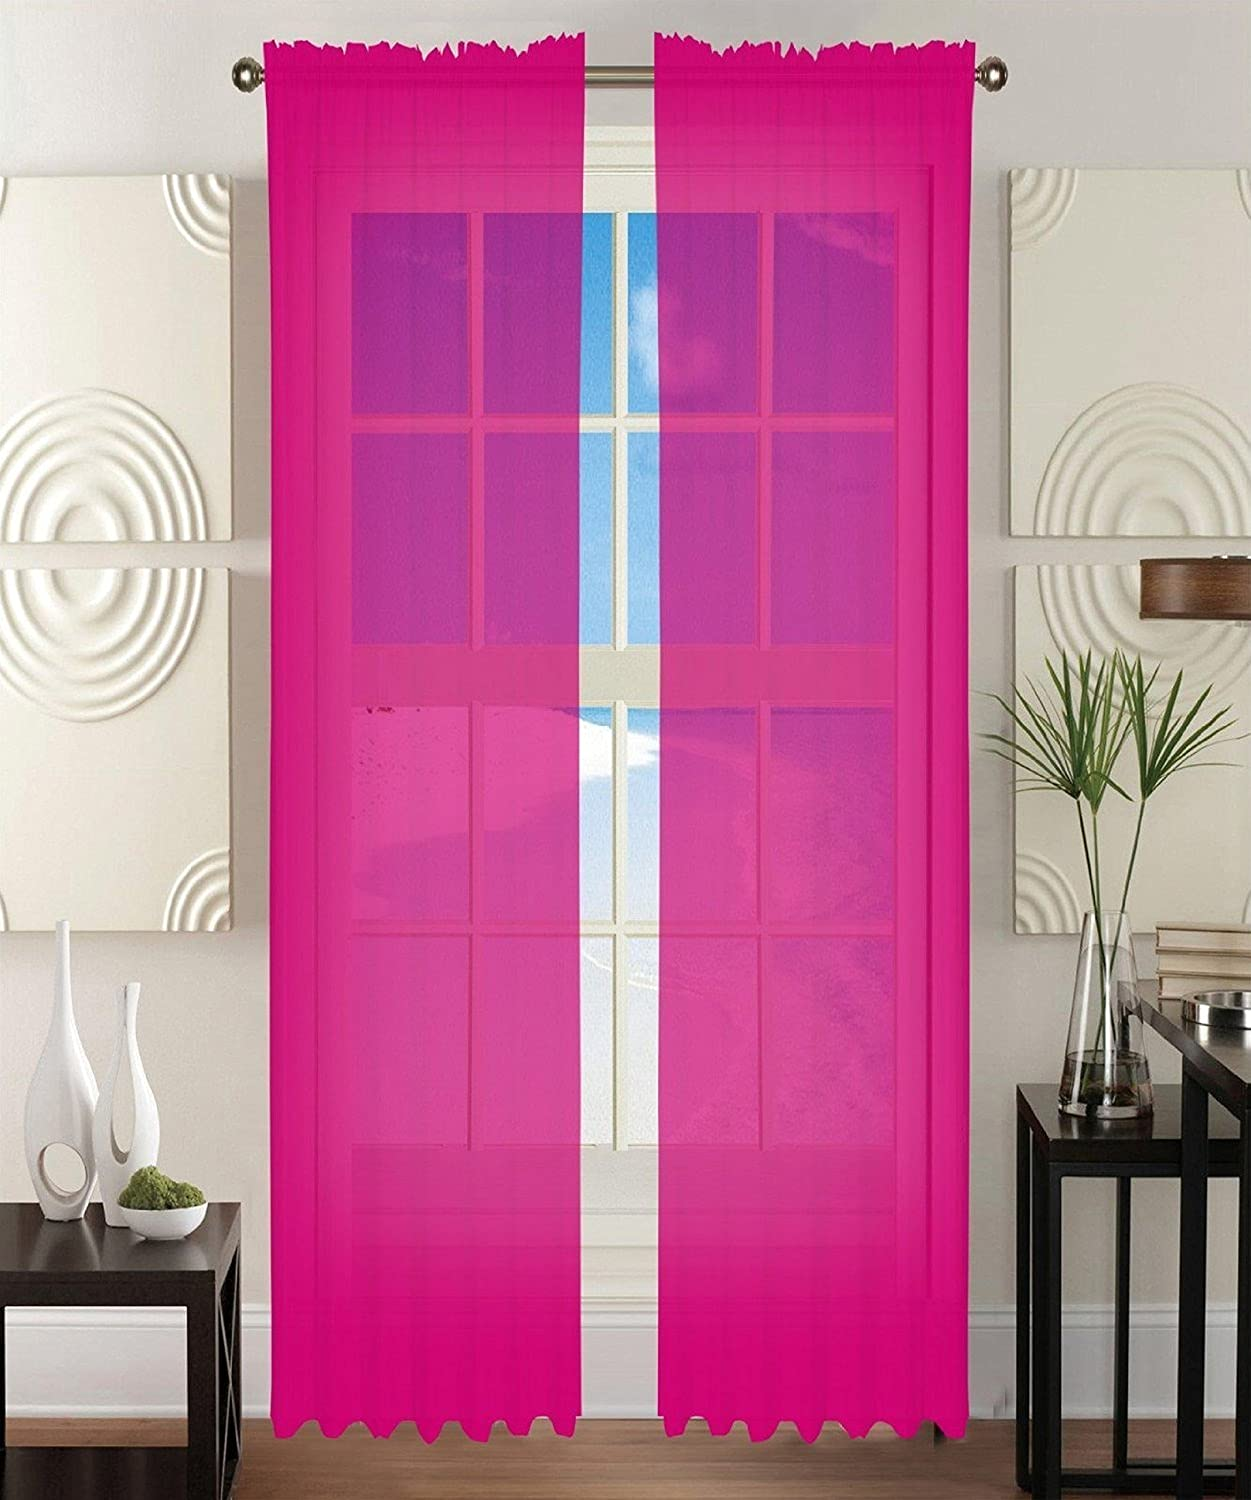 Sheer light pink curtains - Amazon Com 2 Piece Solid Hot Pink Sheer Window Curtains Drape Panels Treatment 60 W X 84 1 Home Kitchen